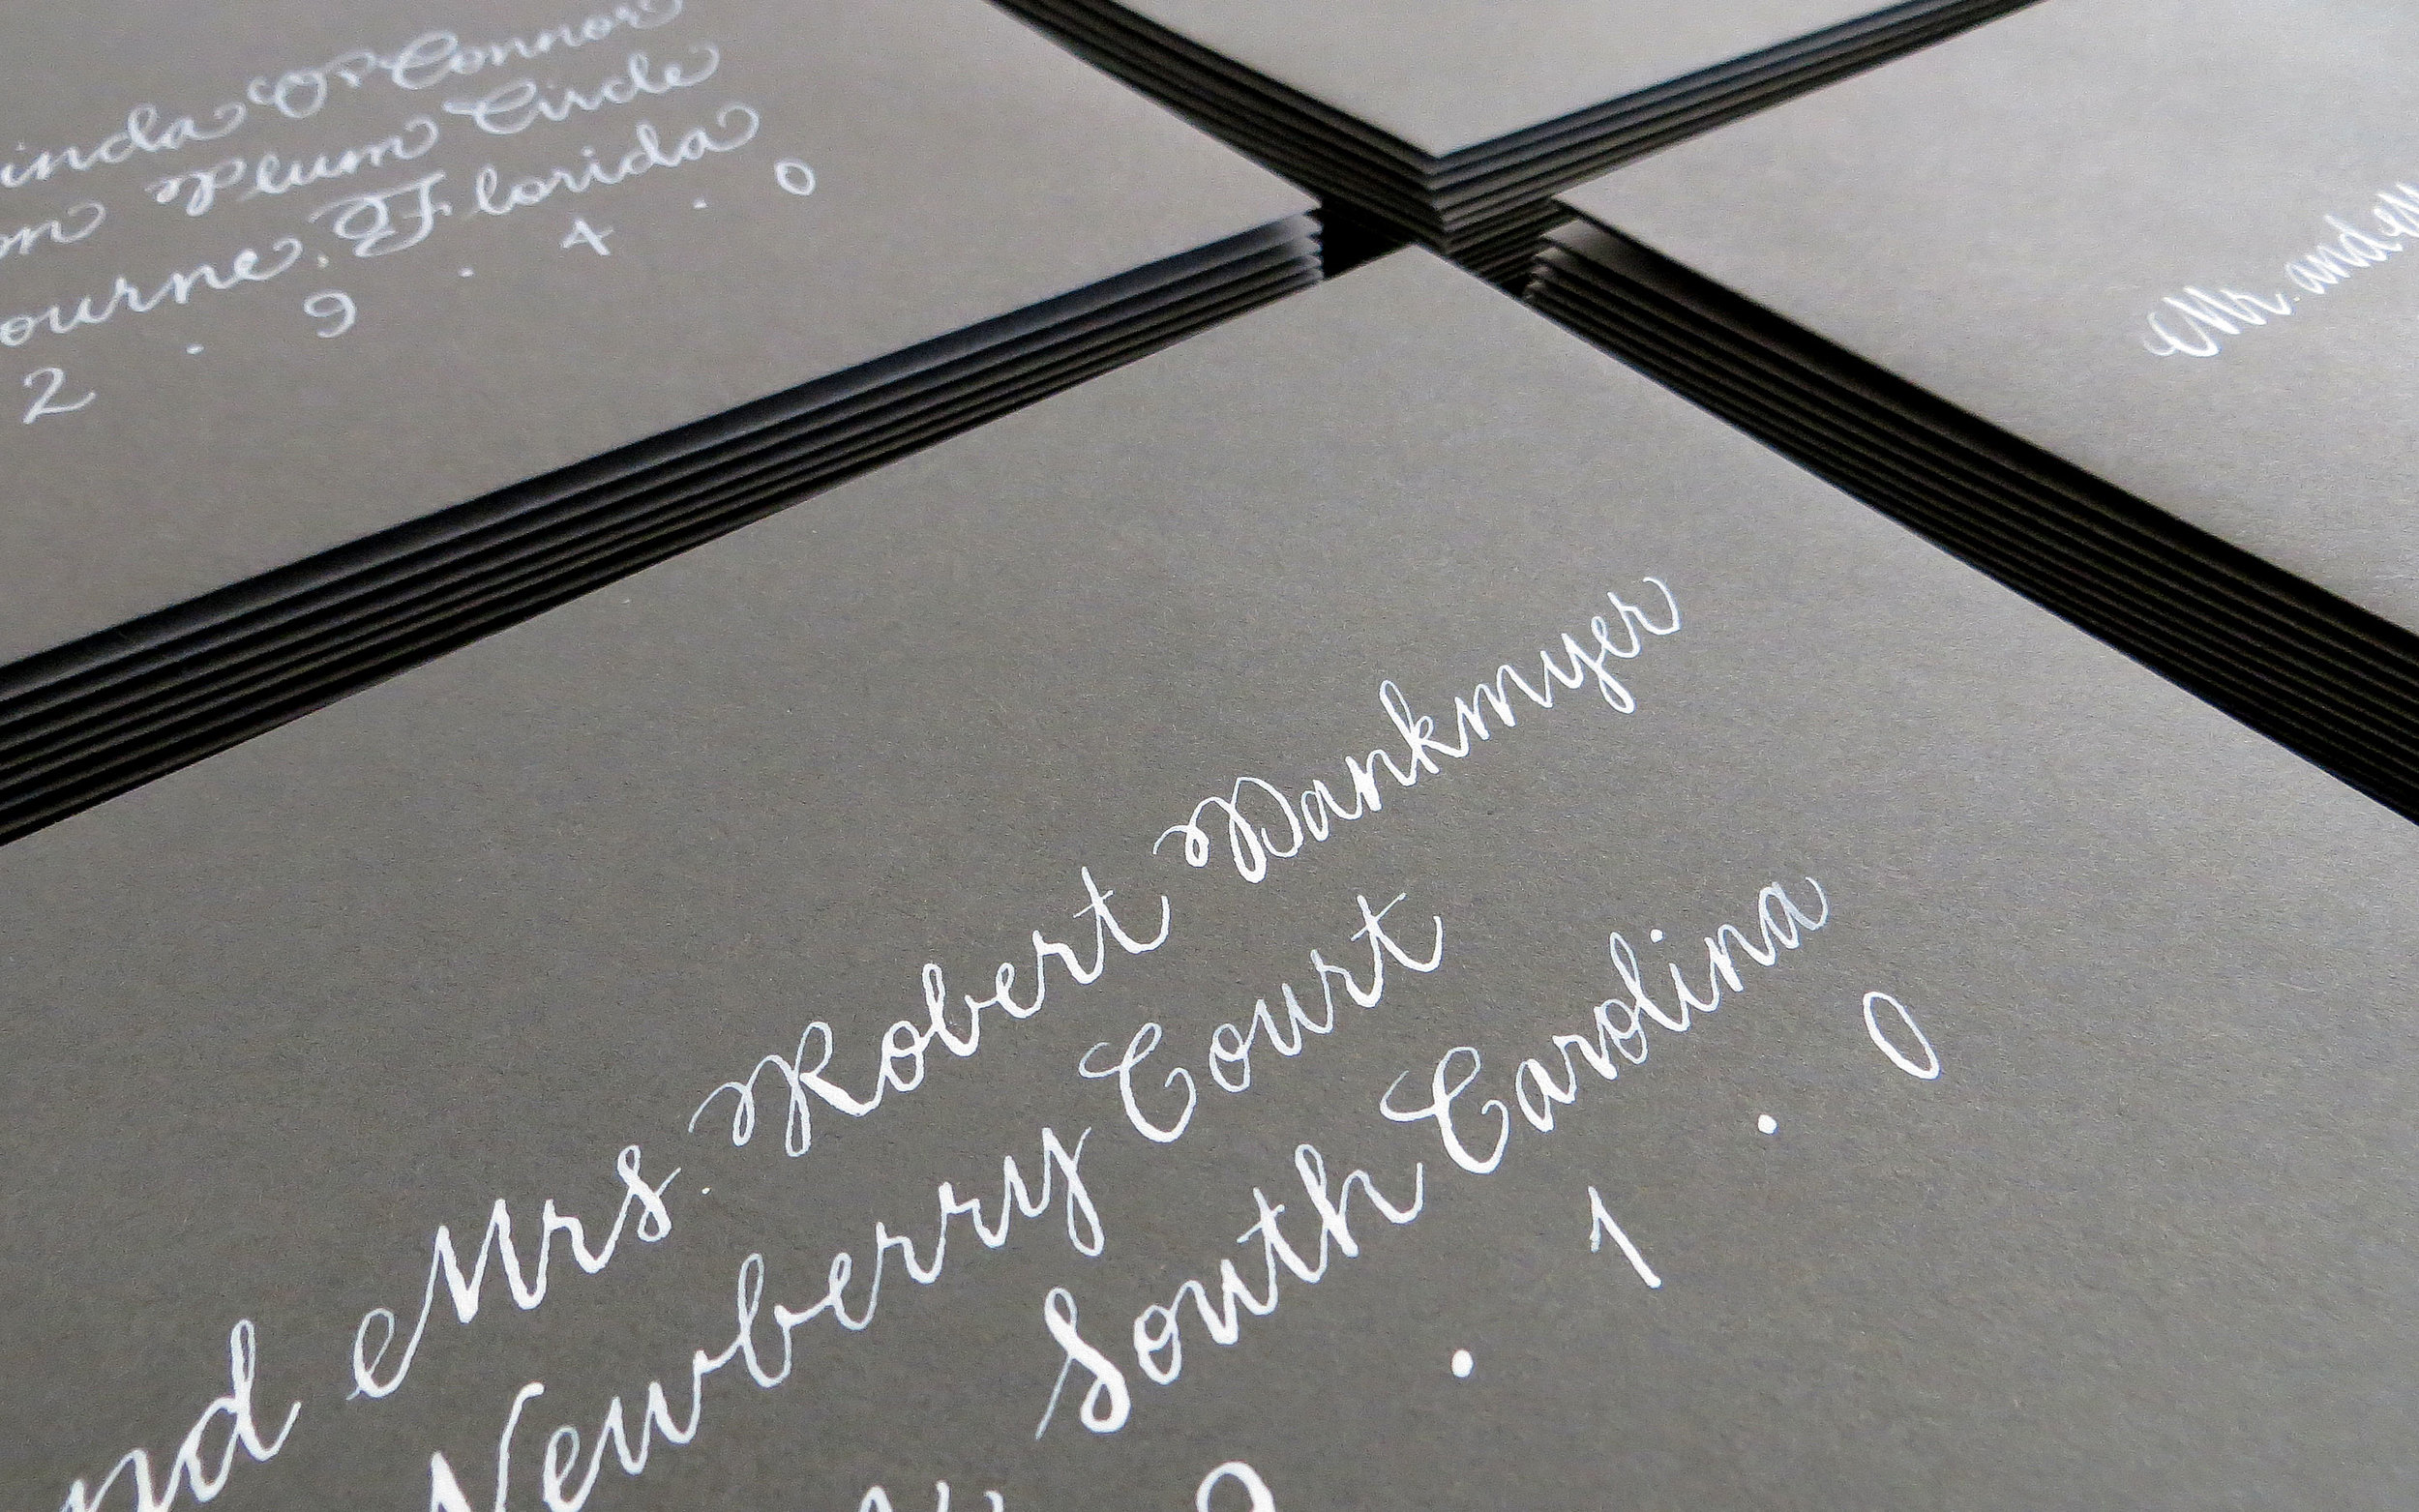 Close-up of calligraphy on mailing envelopes